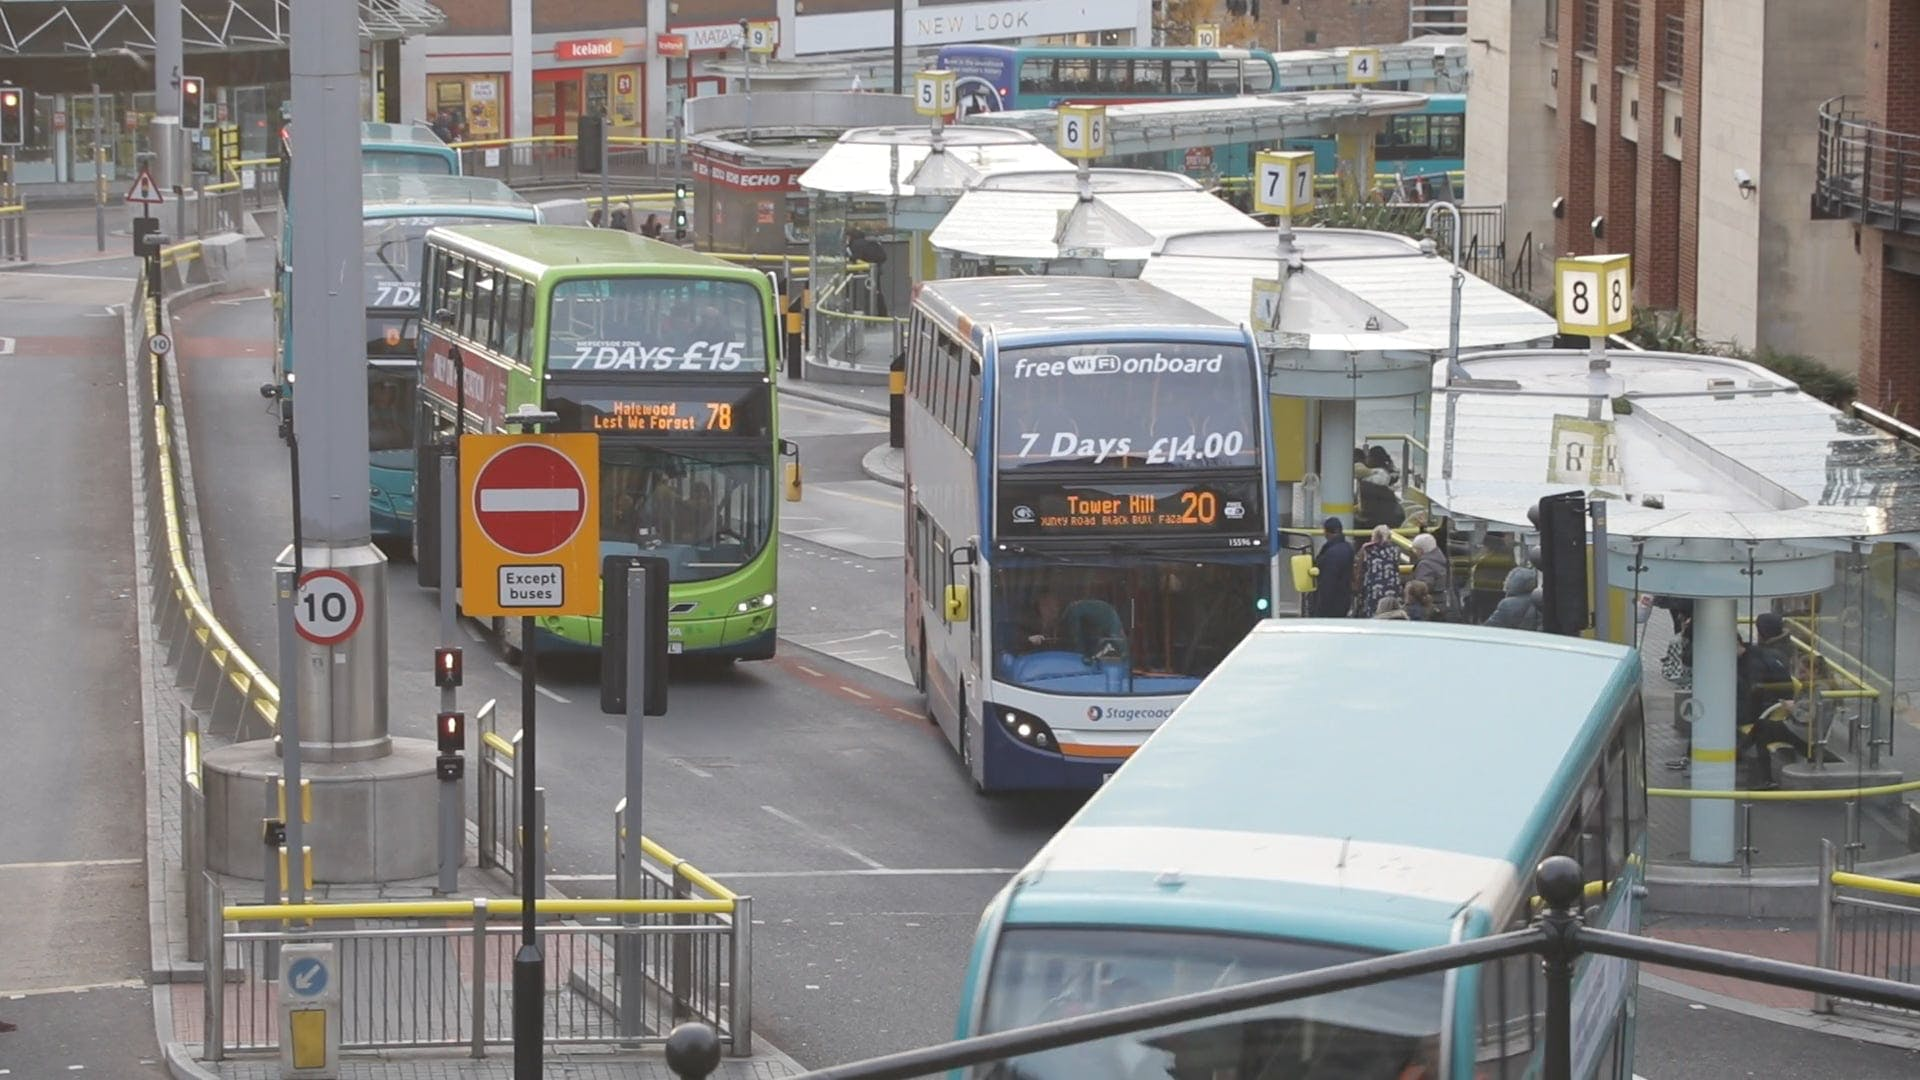 Video Of Buses On Road